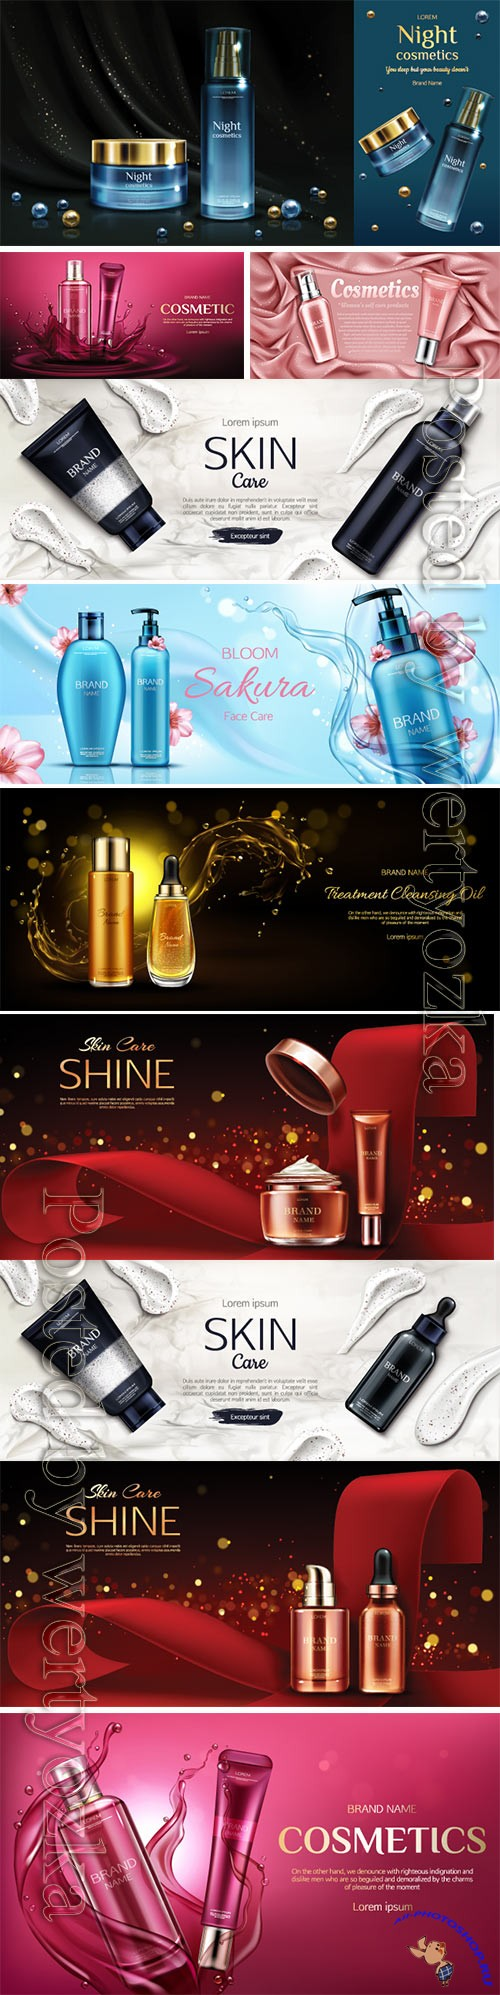 Cosmetic beauty ads flyer vector illustration